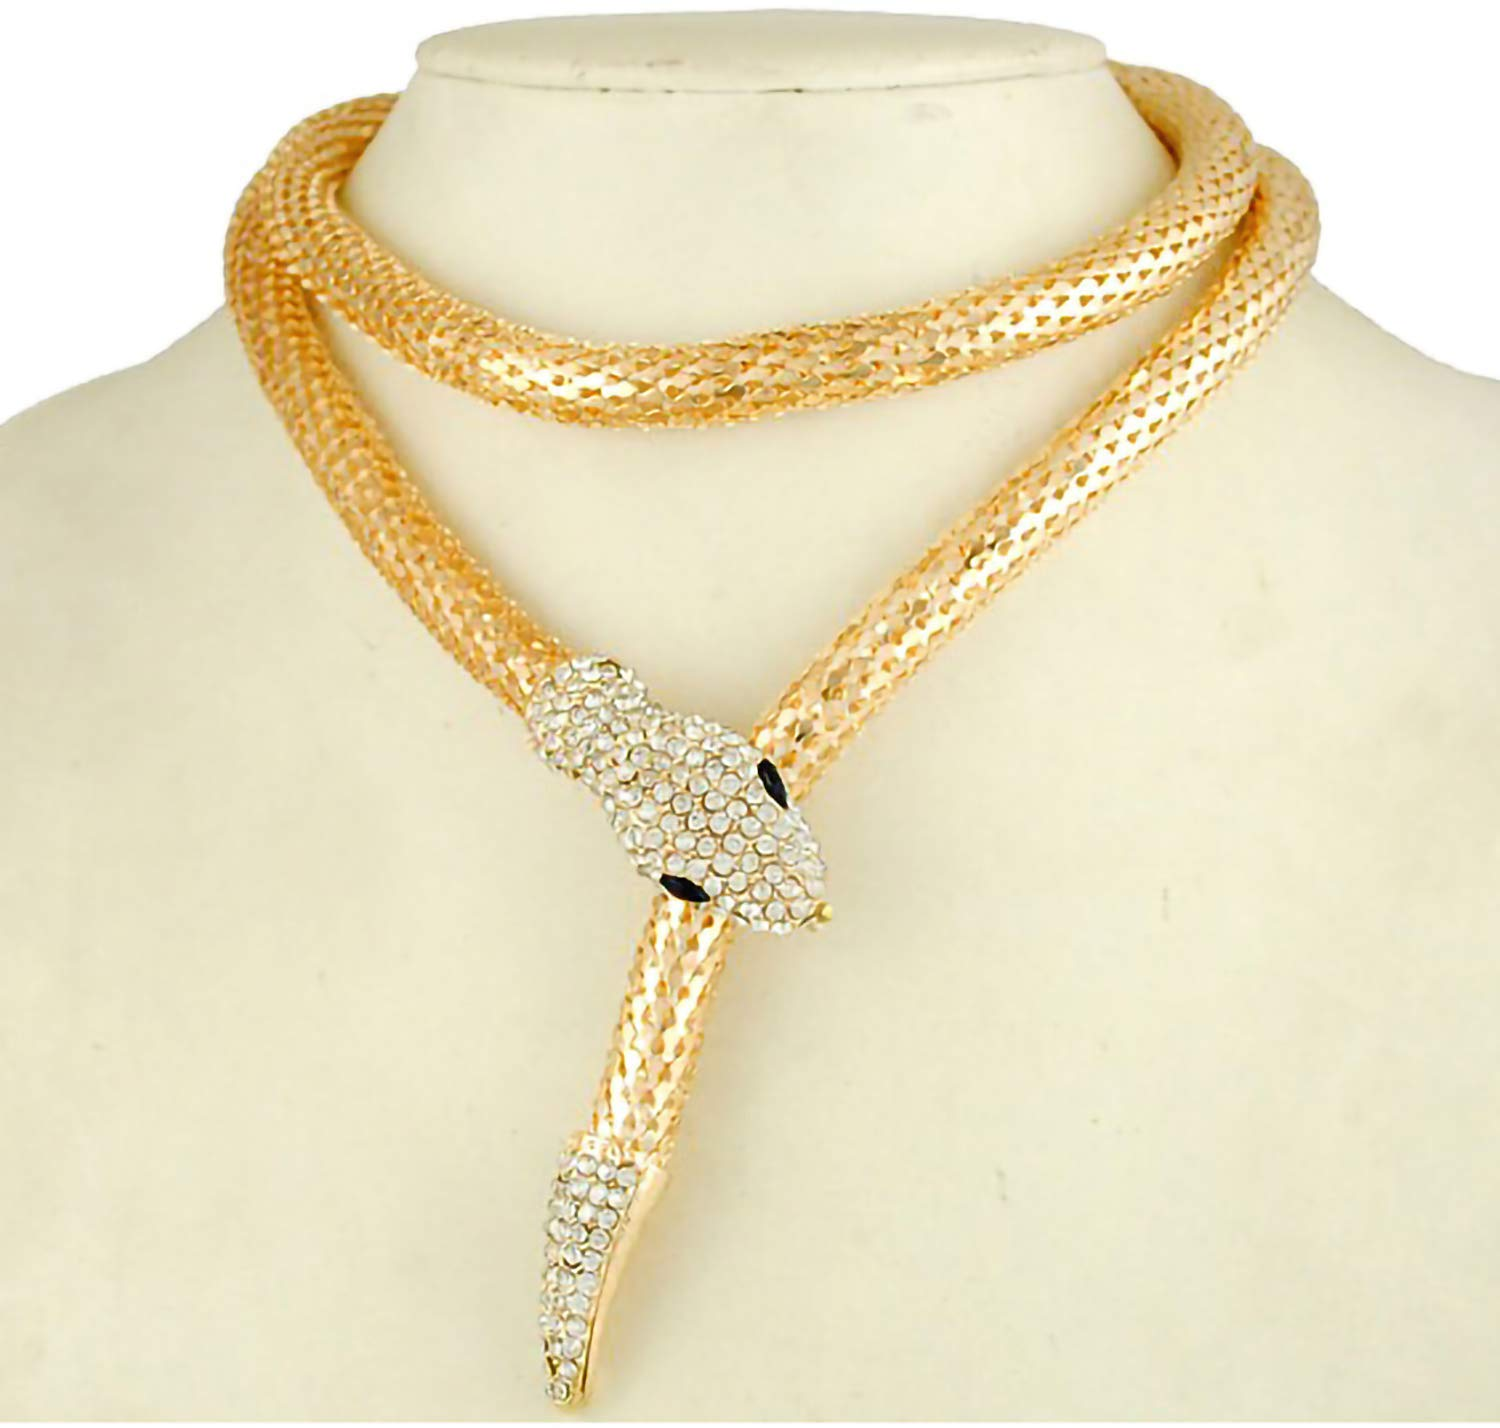 Bellady Women's Flexible Bendable Snake Jewelry Necklace Gothic Magnetic Neck Collar Choker Necklace,Gold-Long